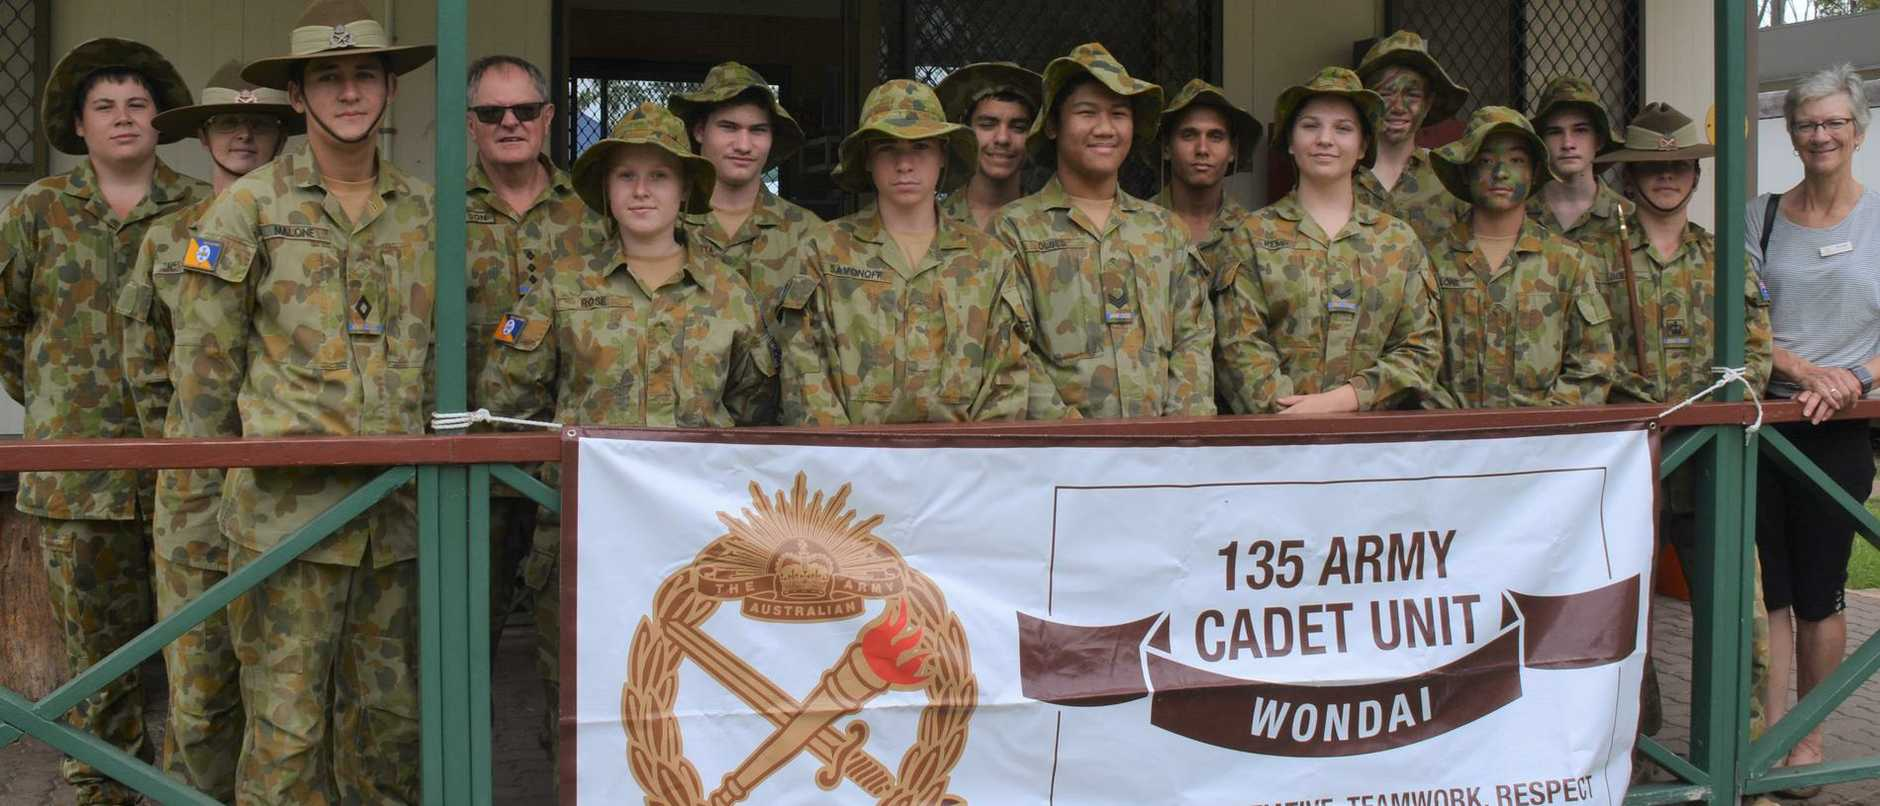 The 135 Army Cadet Unit from Wondai at their open day on Sunday, February 23, 2020.